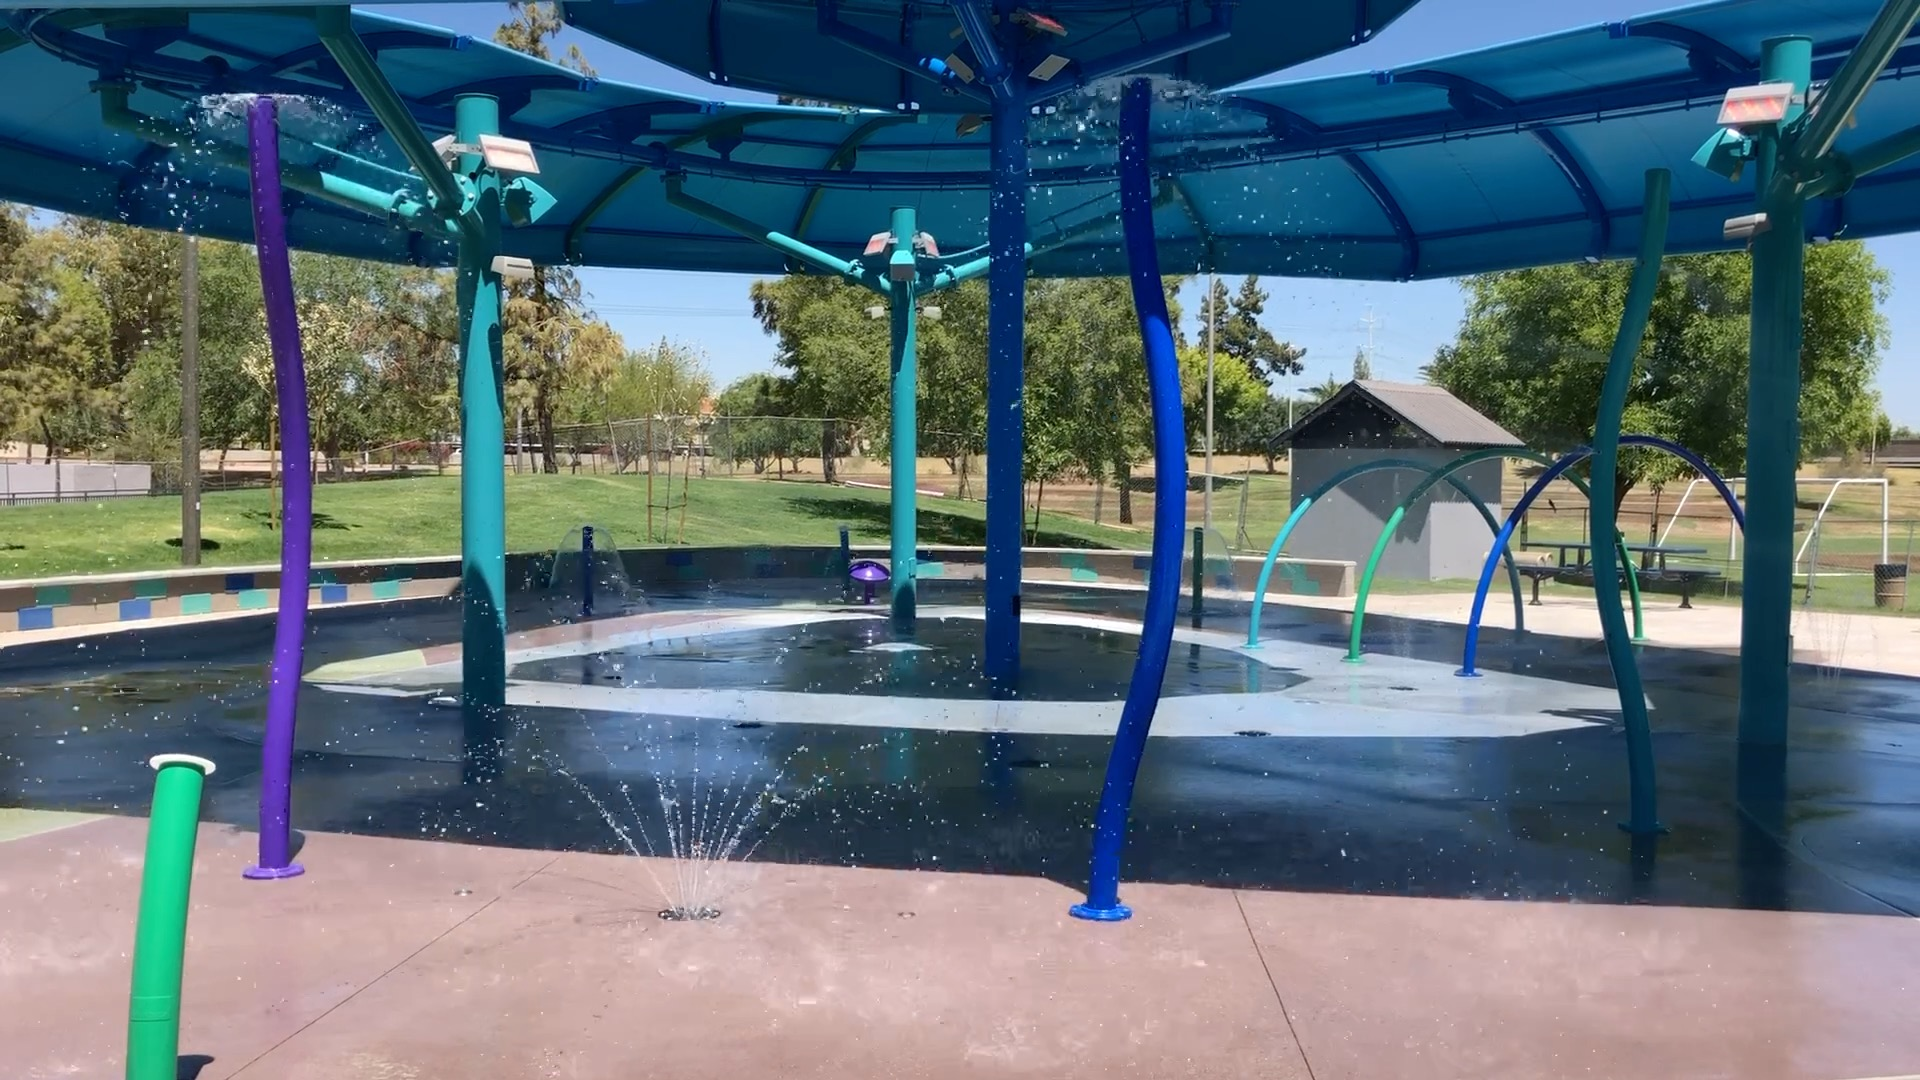 Summer In Arizona 100 Splash Pads And Community Pools To Keep